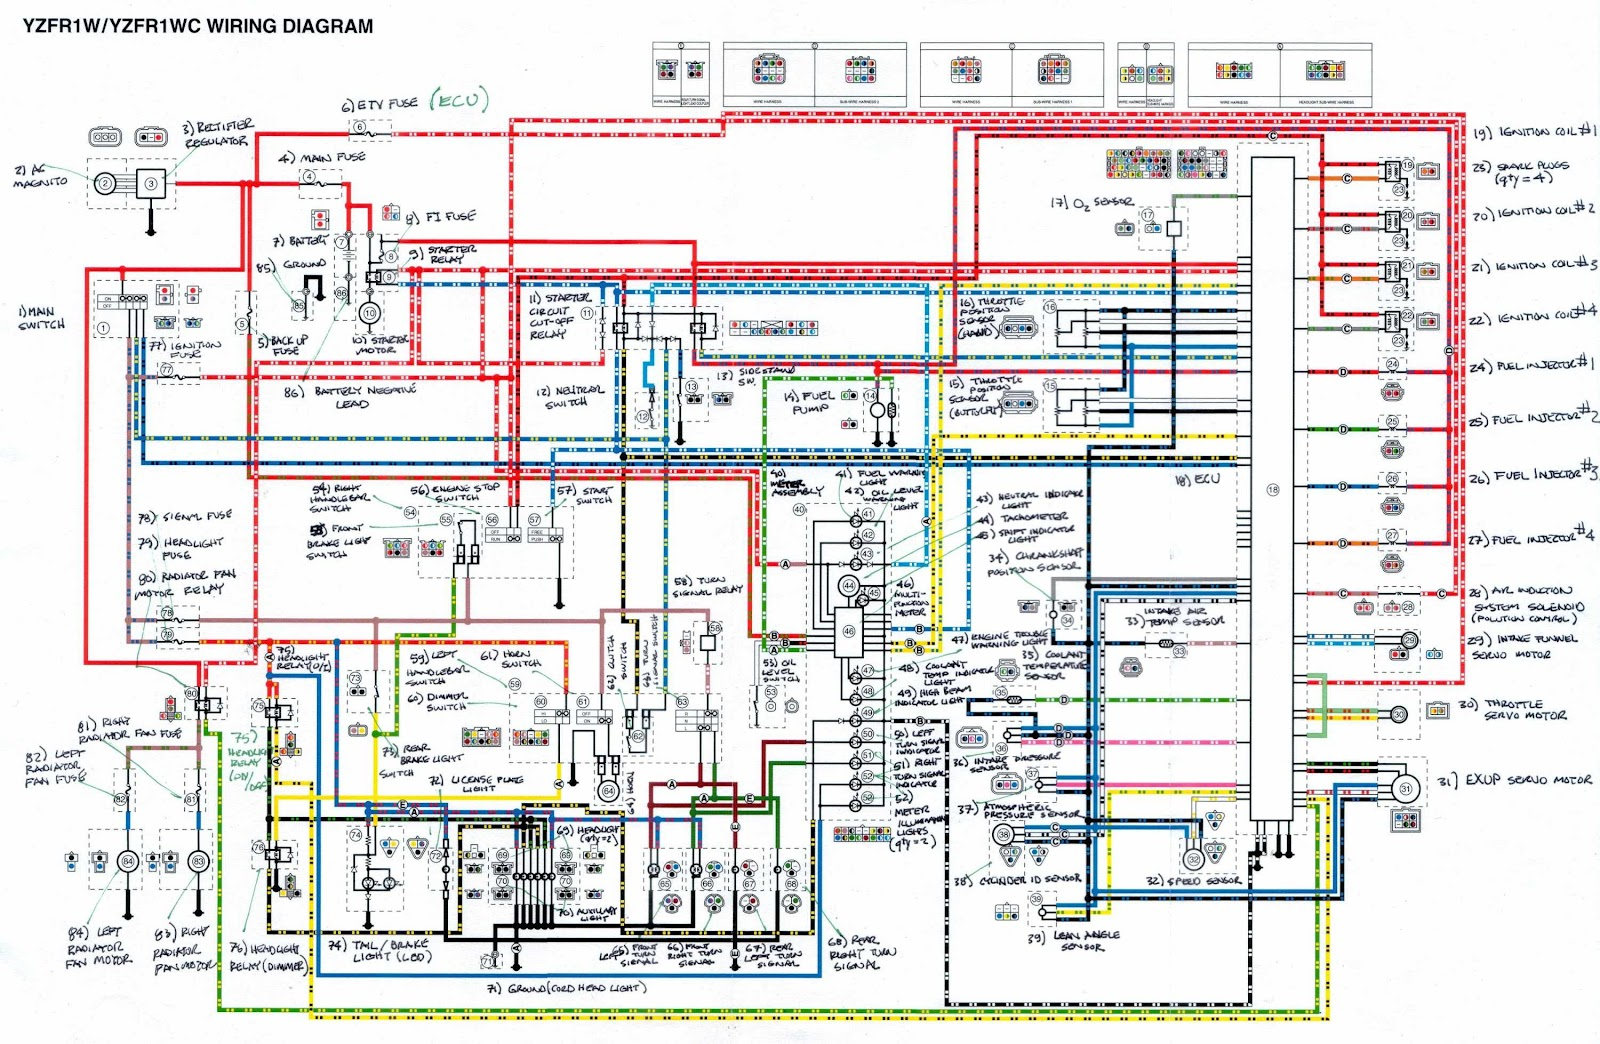 wiring diagram for triumph tr7 1976 6 1980 mgb wiring diagram wiring diagram for [ 1600 x 1044 Pixel ]